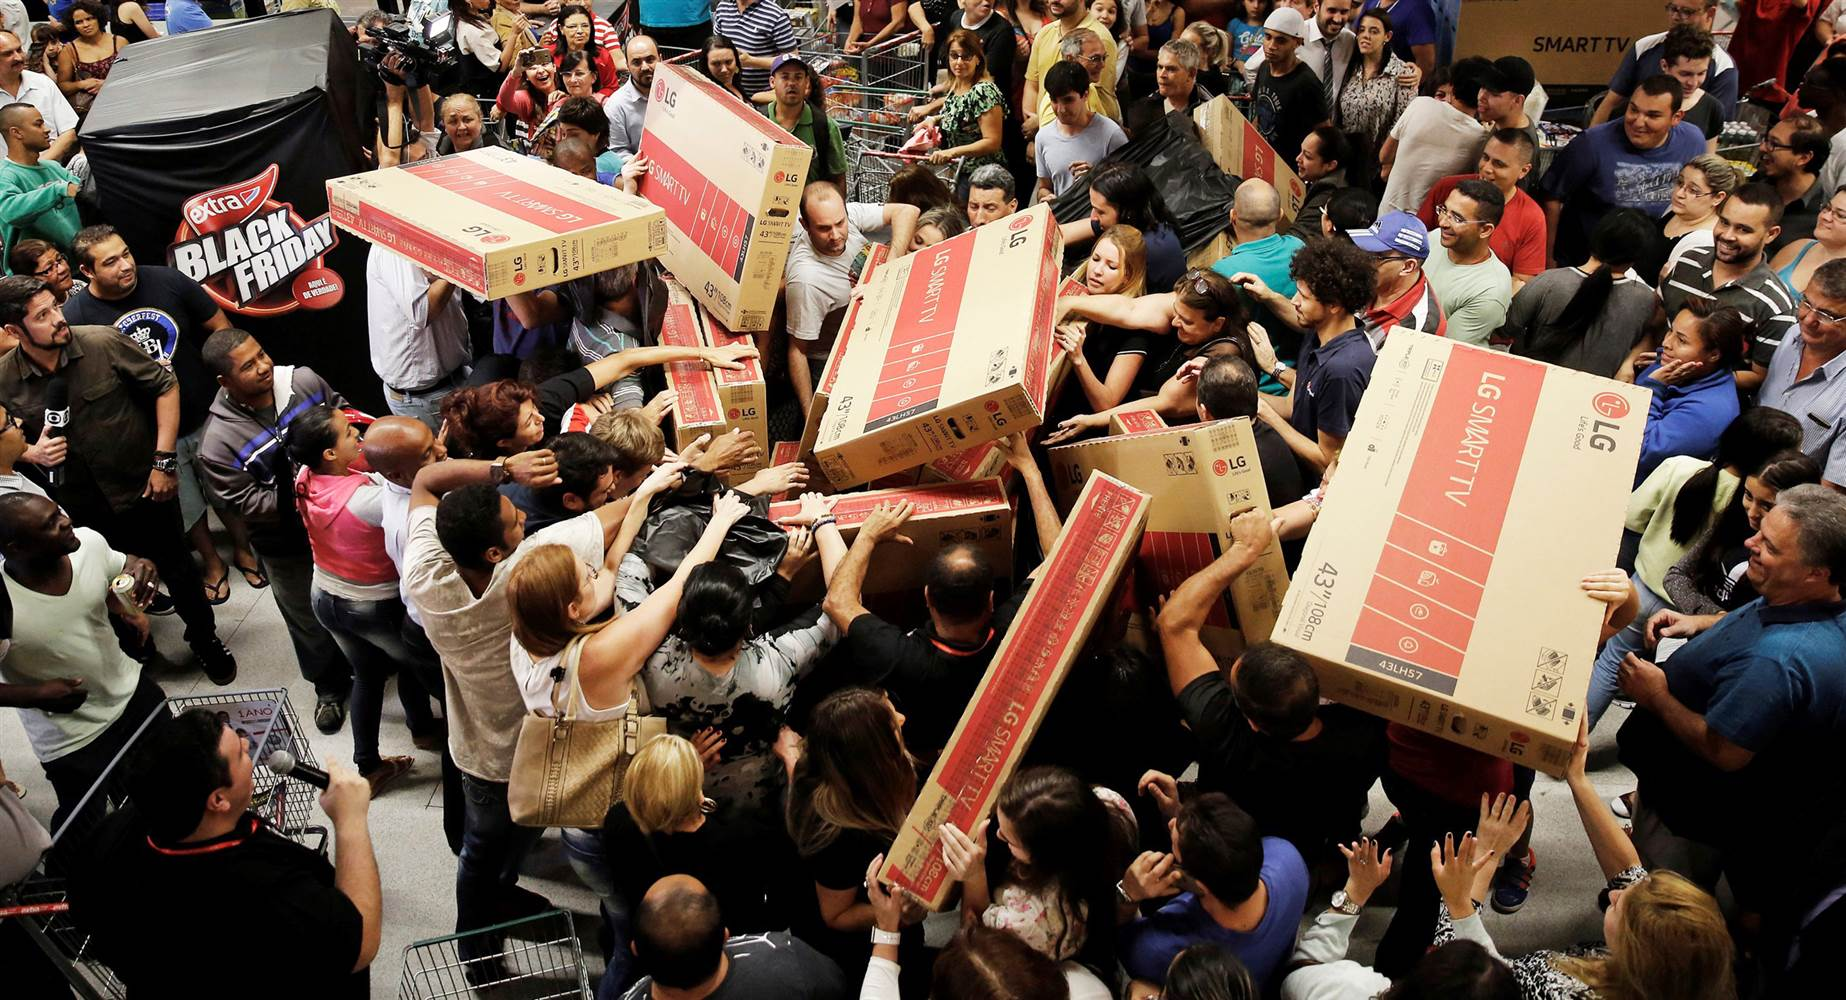 Black Freday Top 5 Tips On Surviving Black Friday The Handy Mano